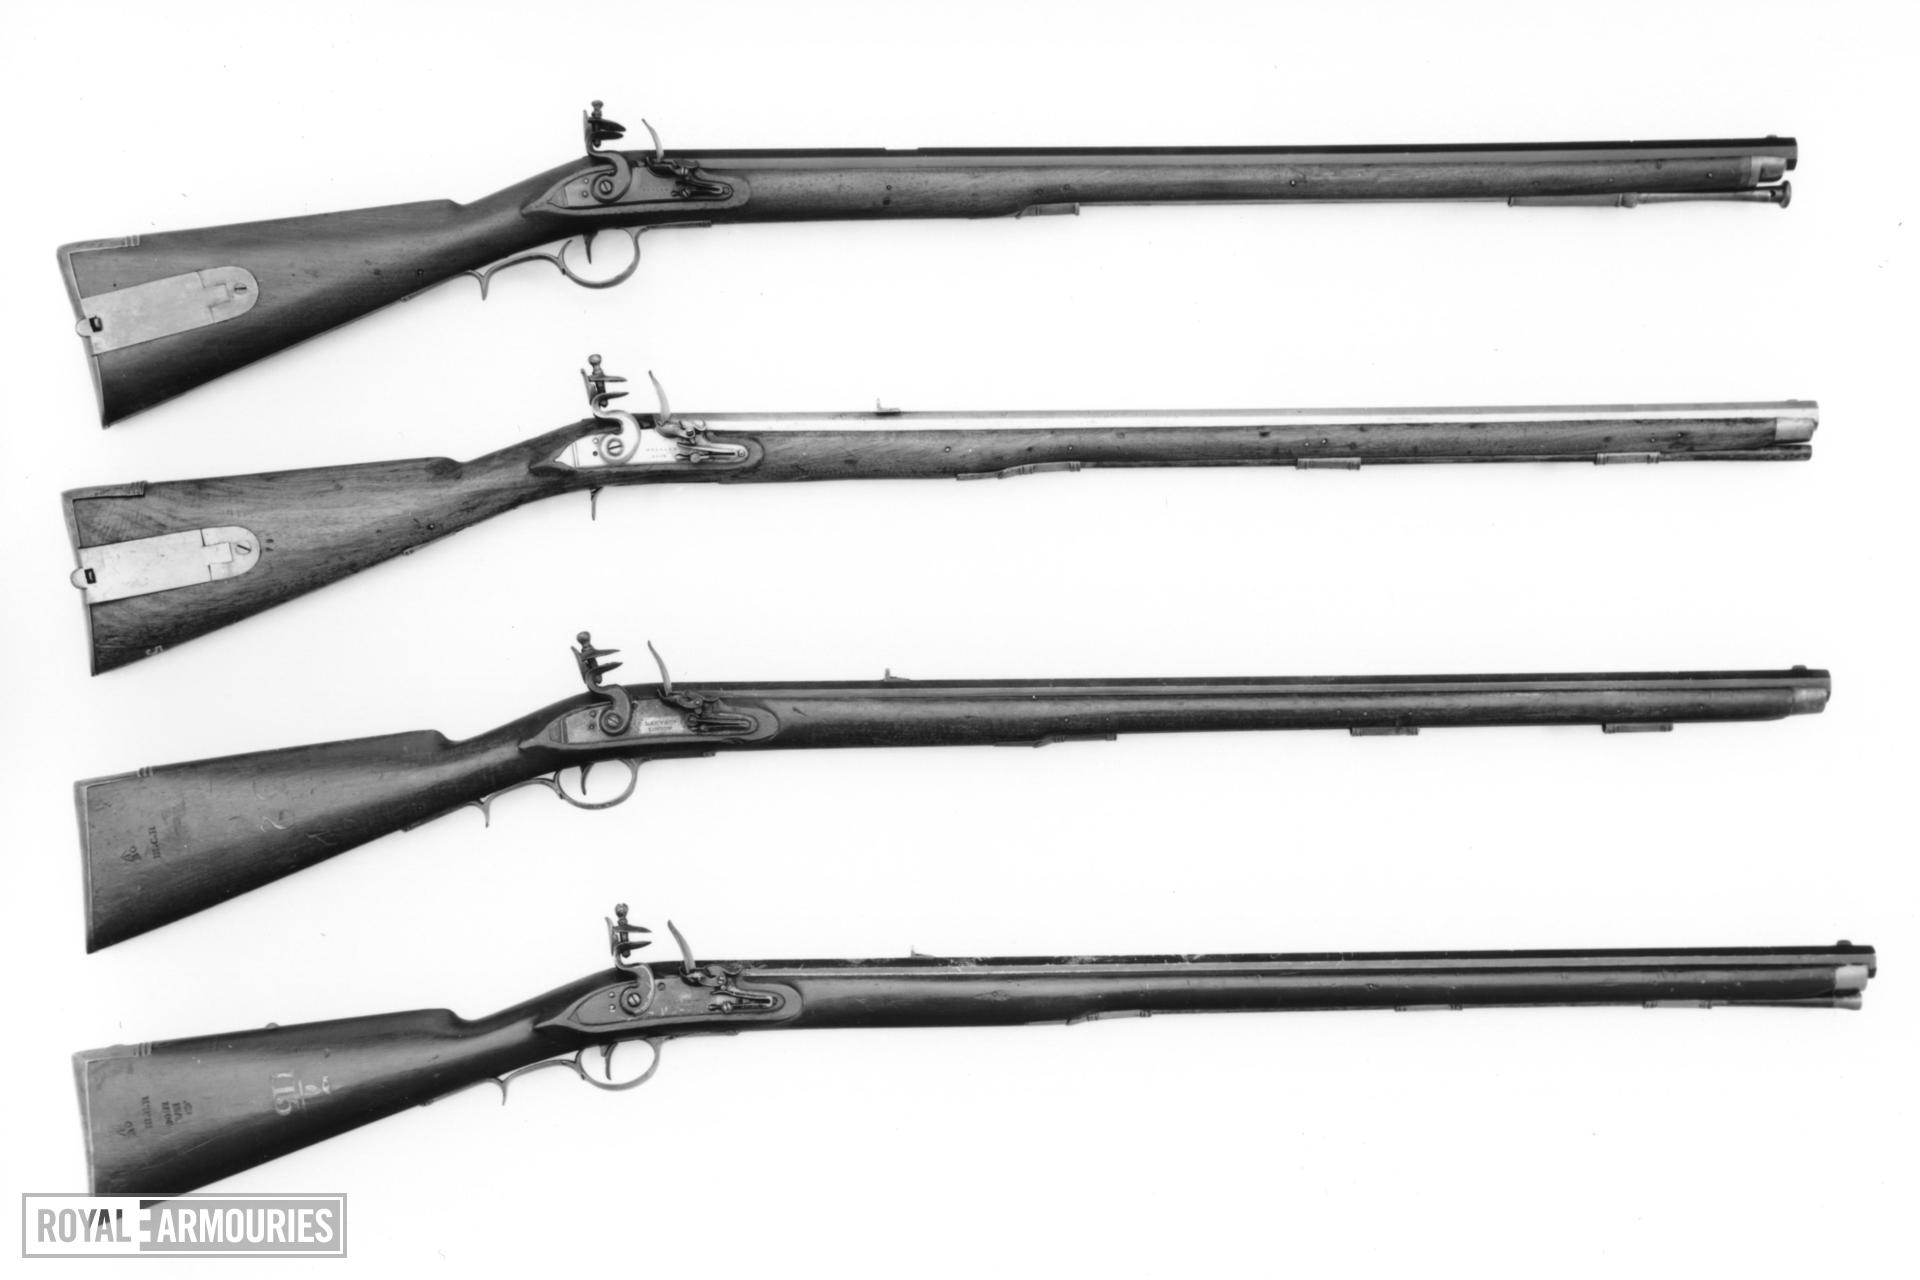 Flintlock muzzle-loading rifle - By Lacy & Co For the American market